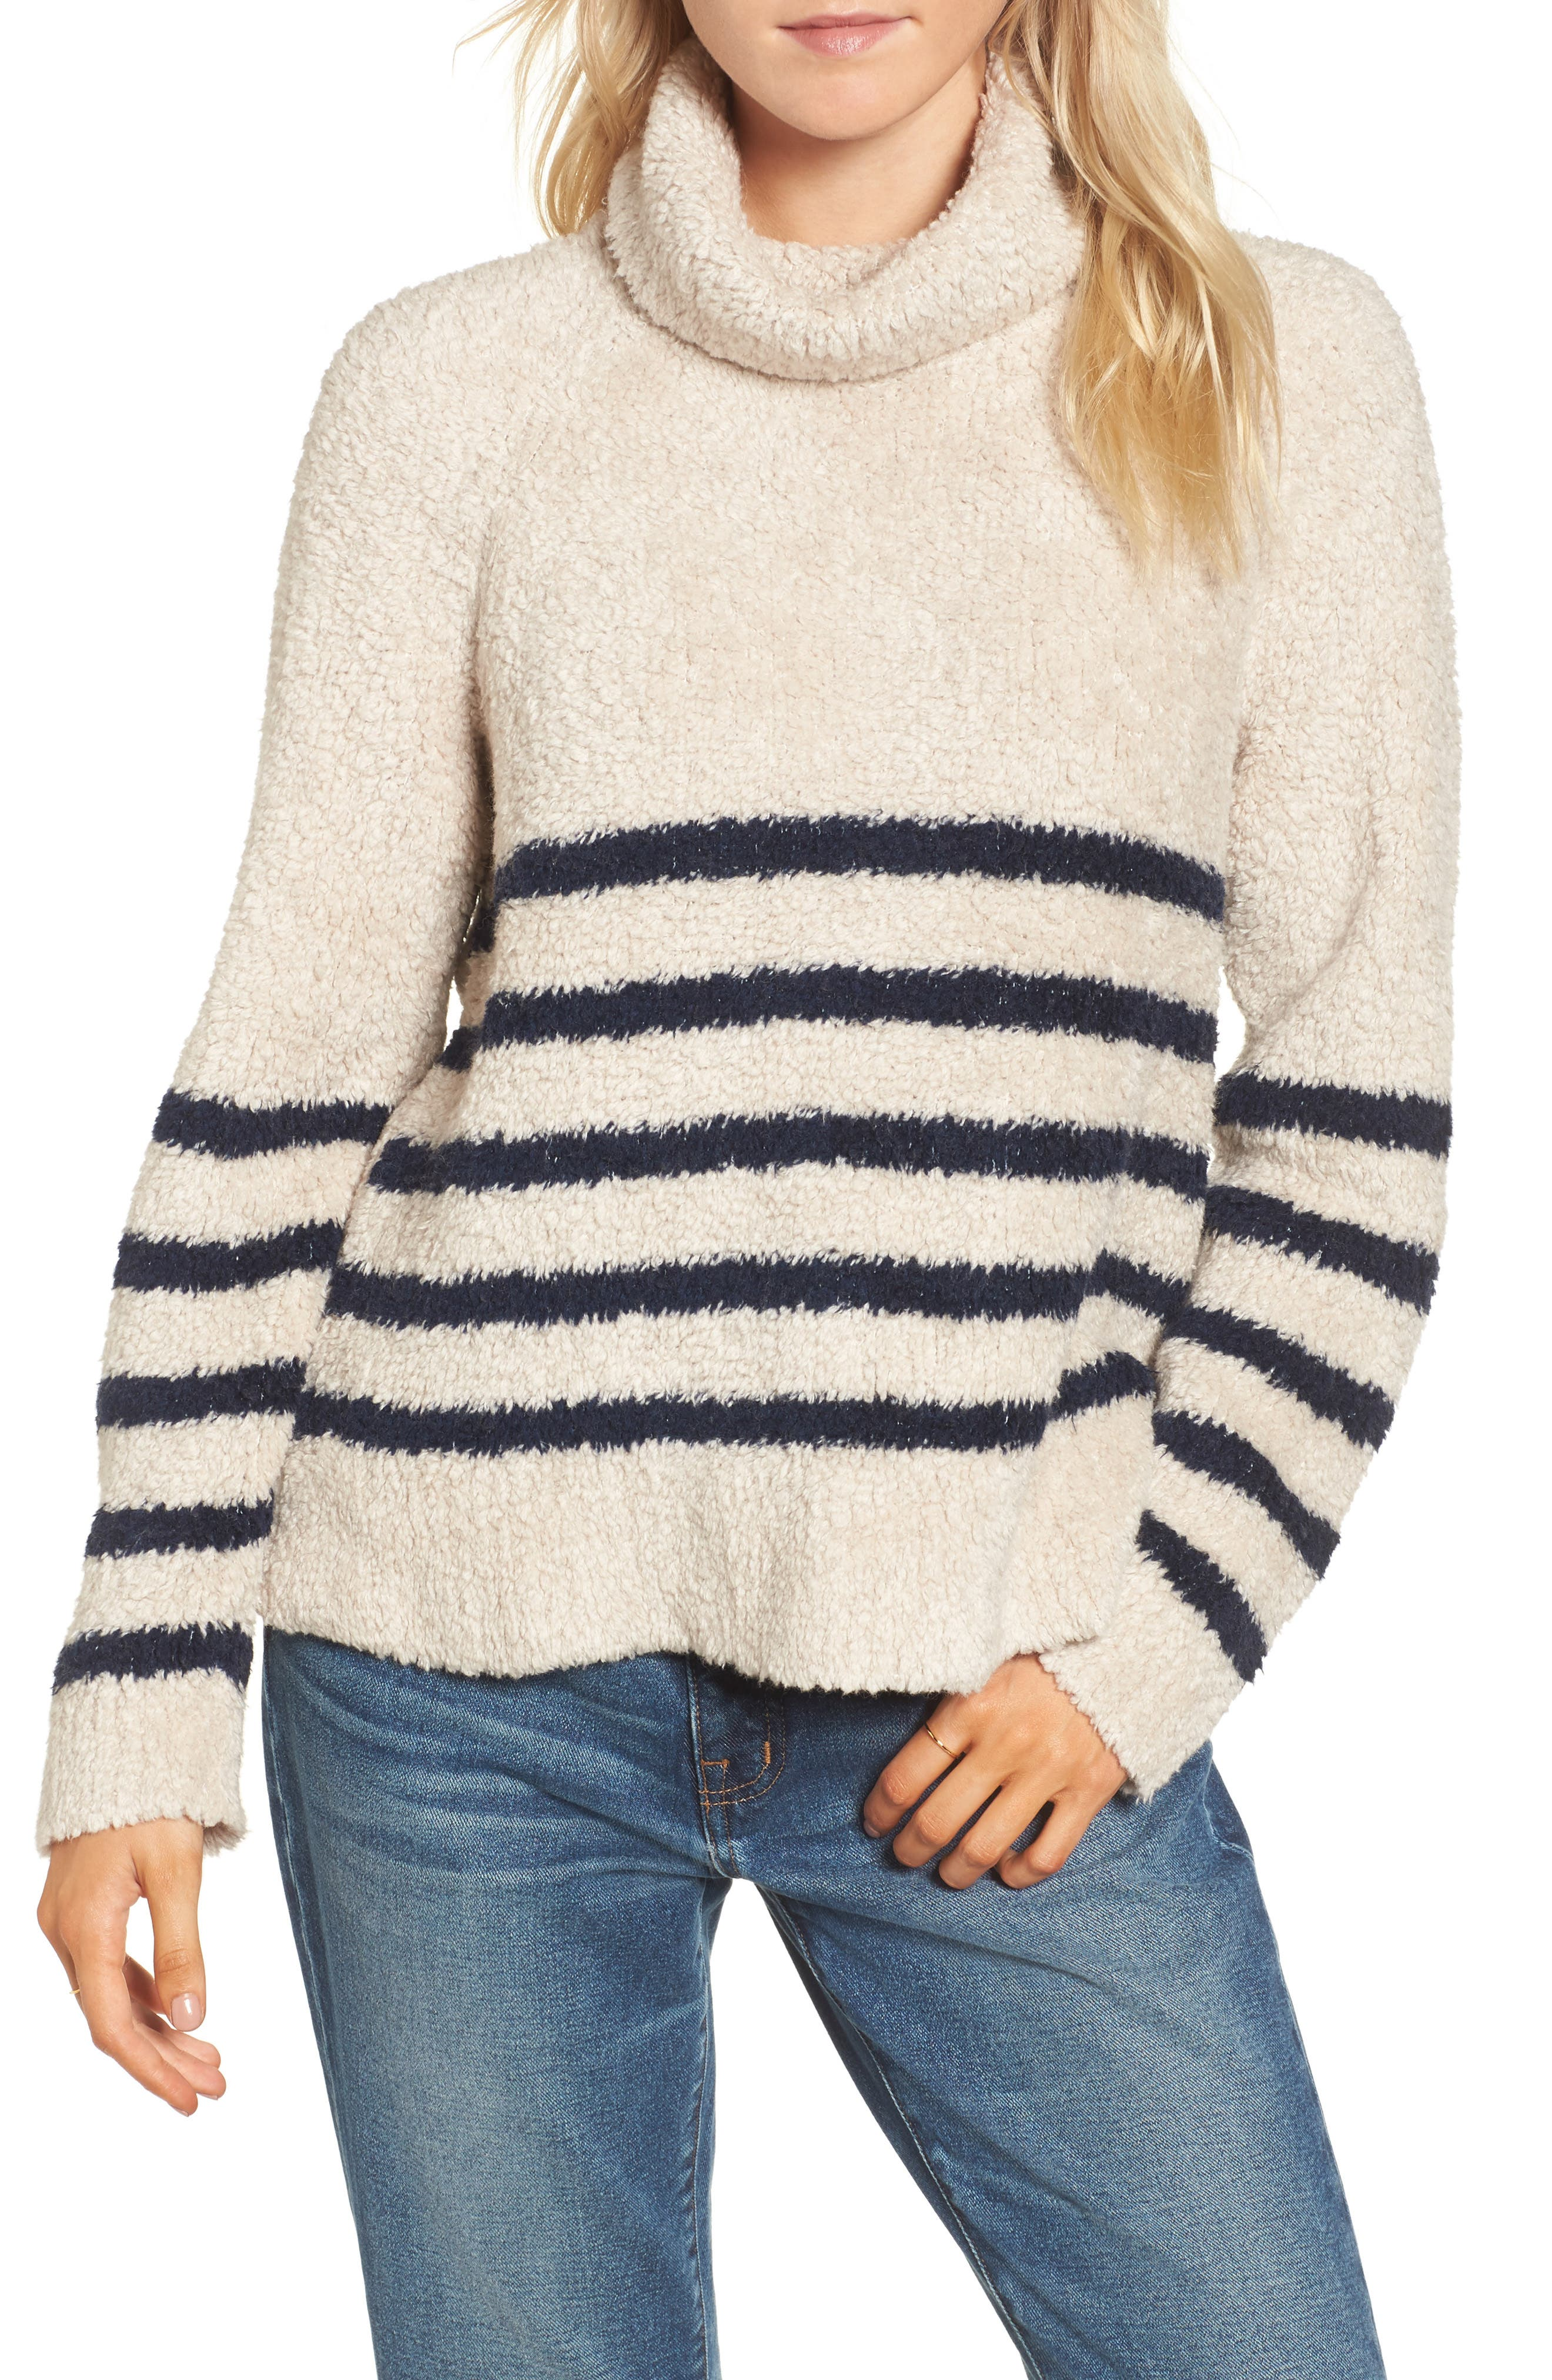 Mariner Stripe Turtleneck Sweater,                             Main thumbnail 1, color,                             Cloud Lining